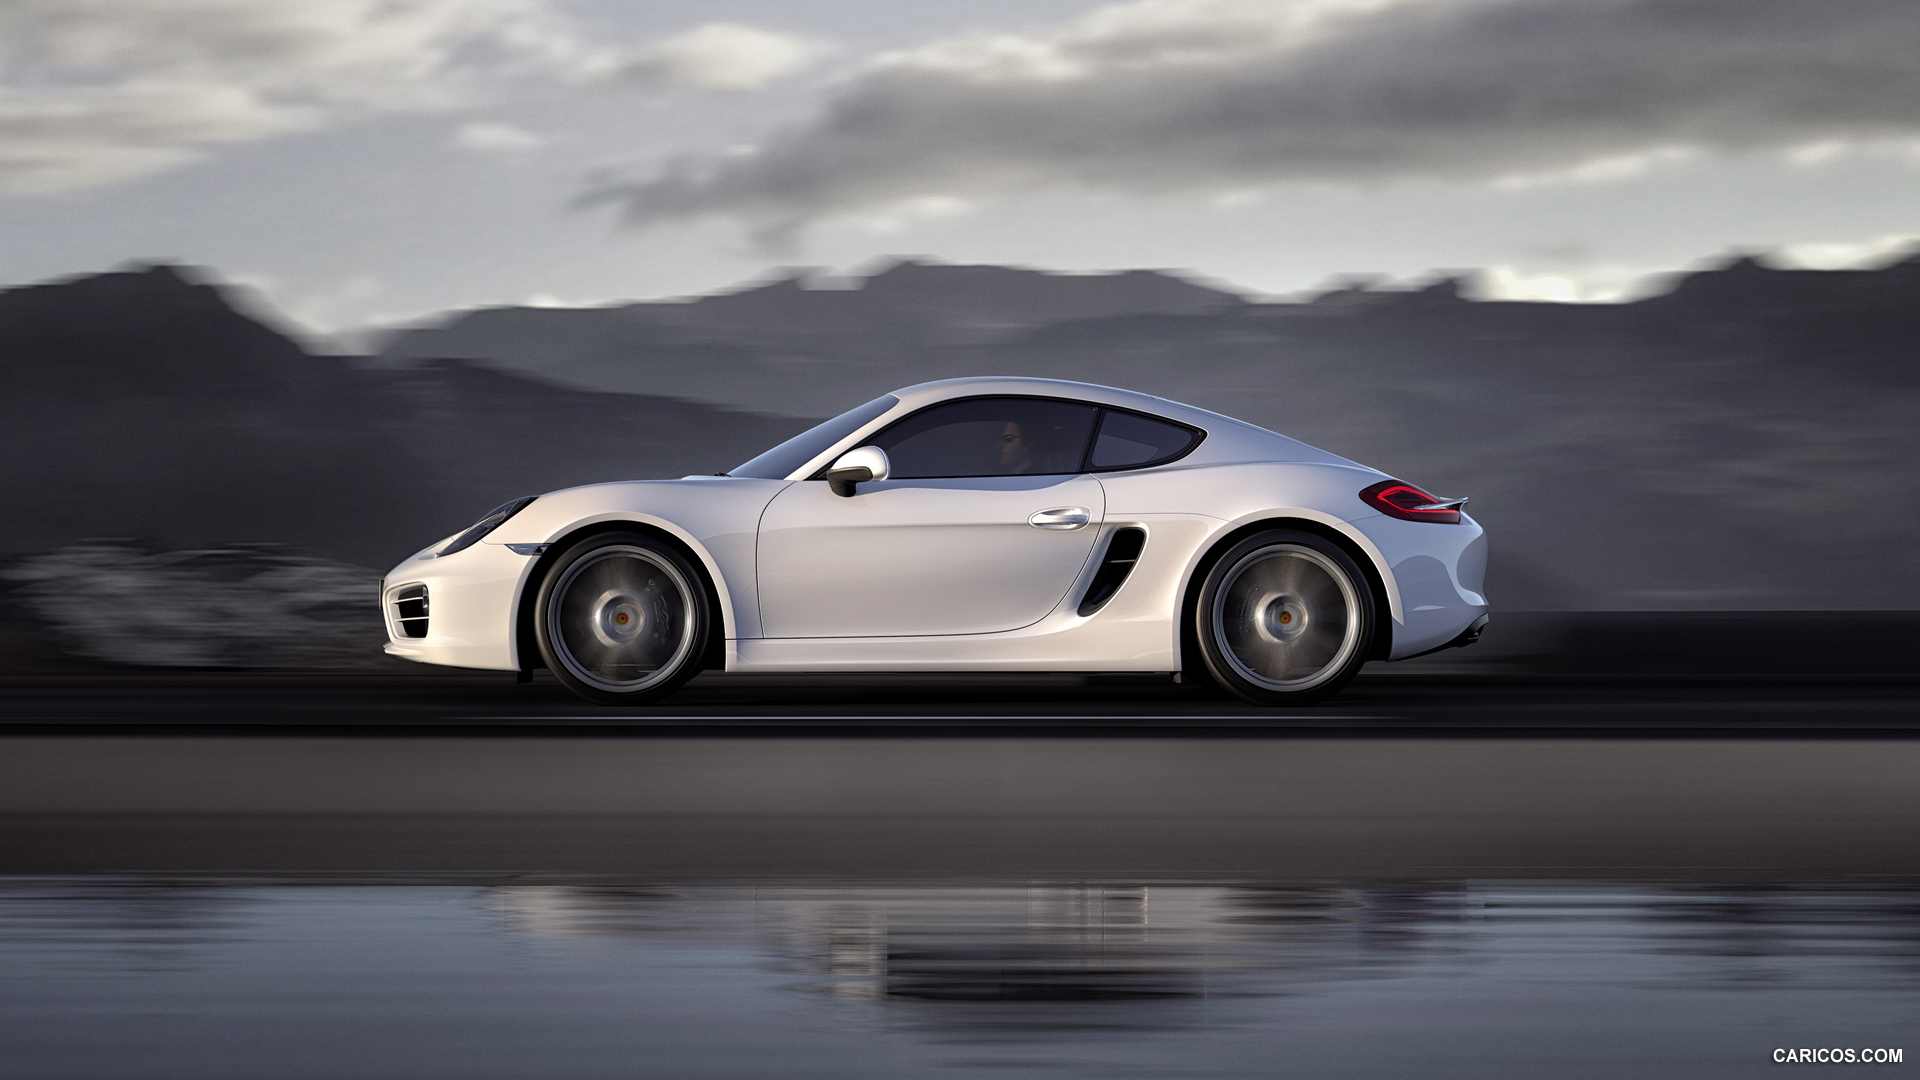 1920x1080 - Porsche Cayman Wallpapers 21